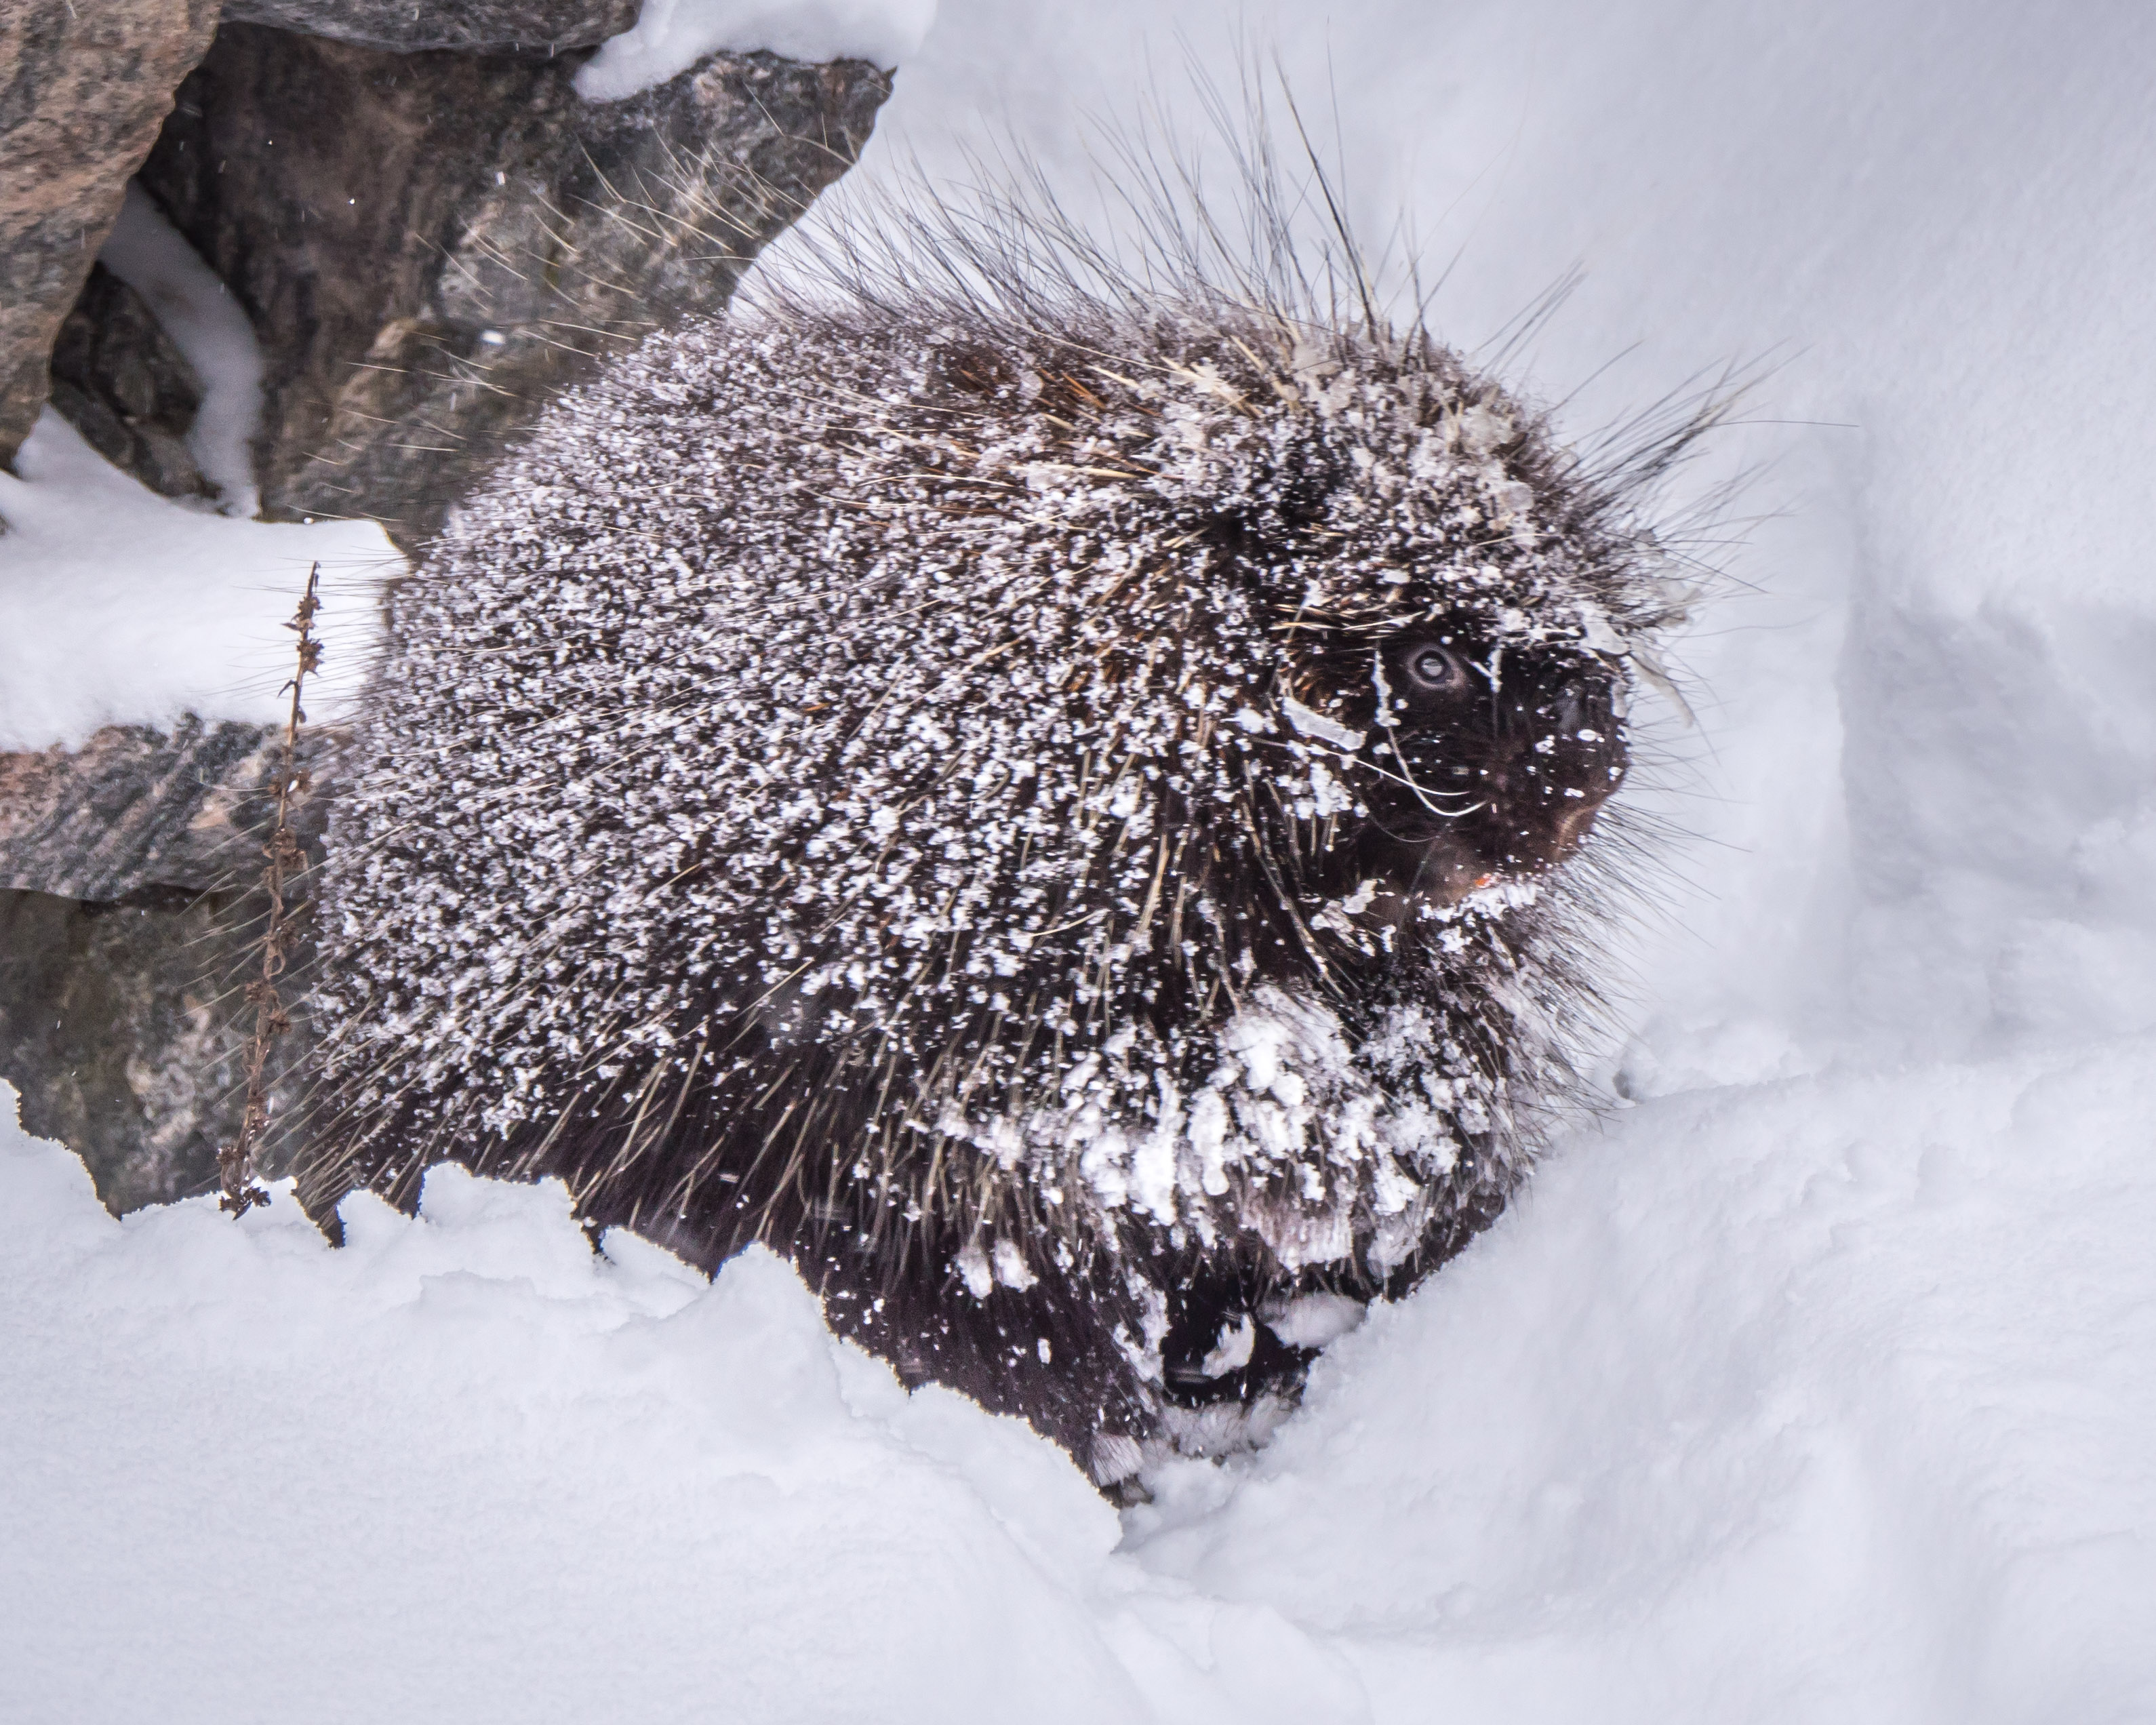 20161218 more snow a porcupine and some sunshine